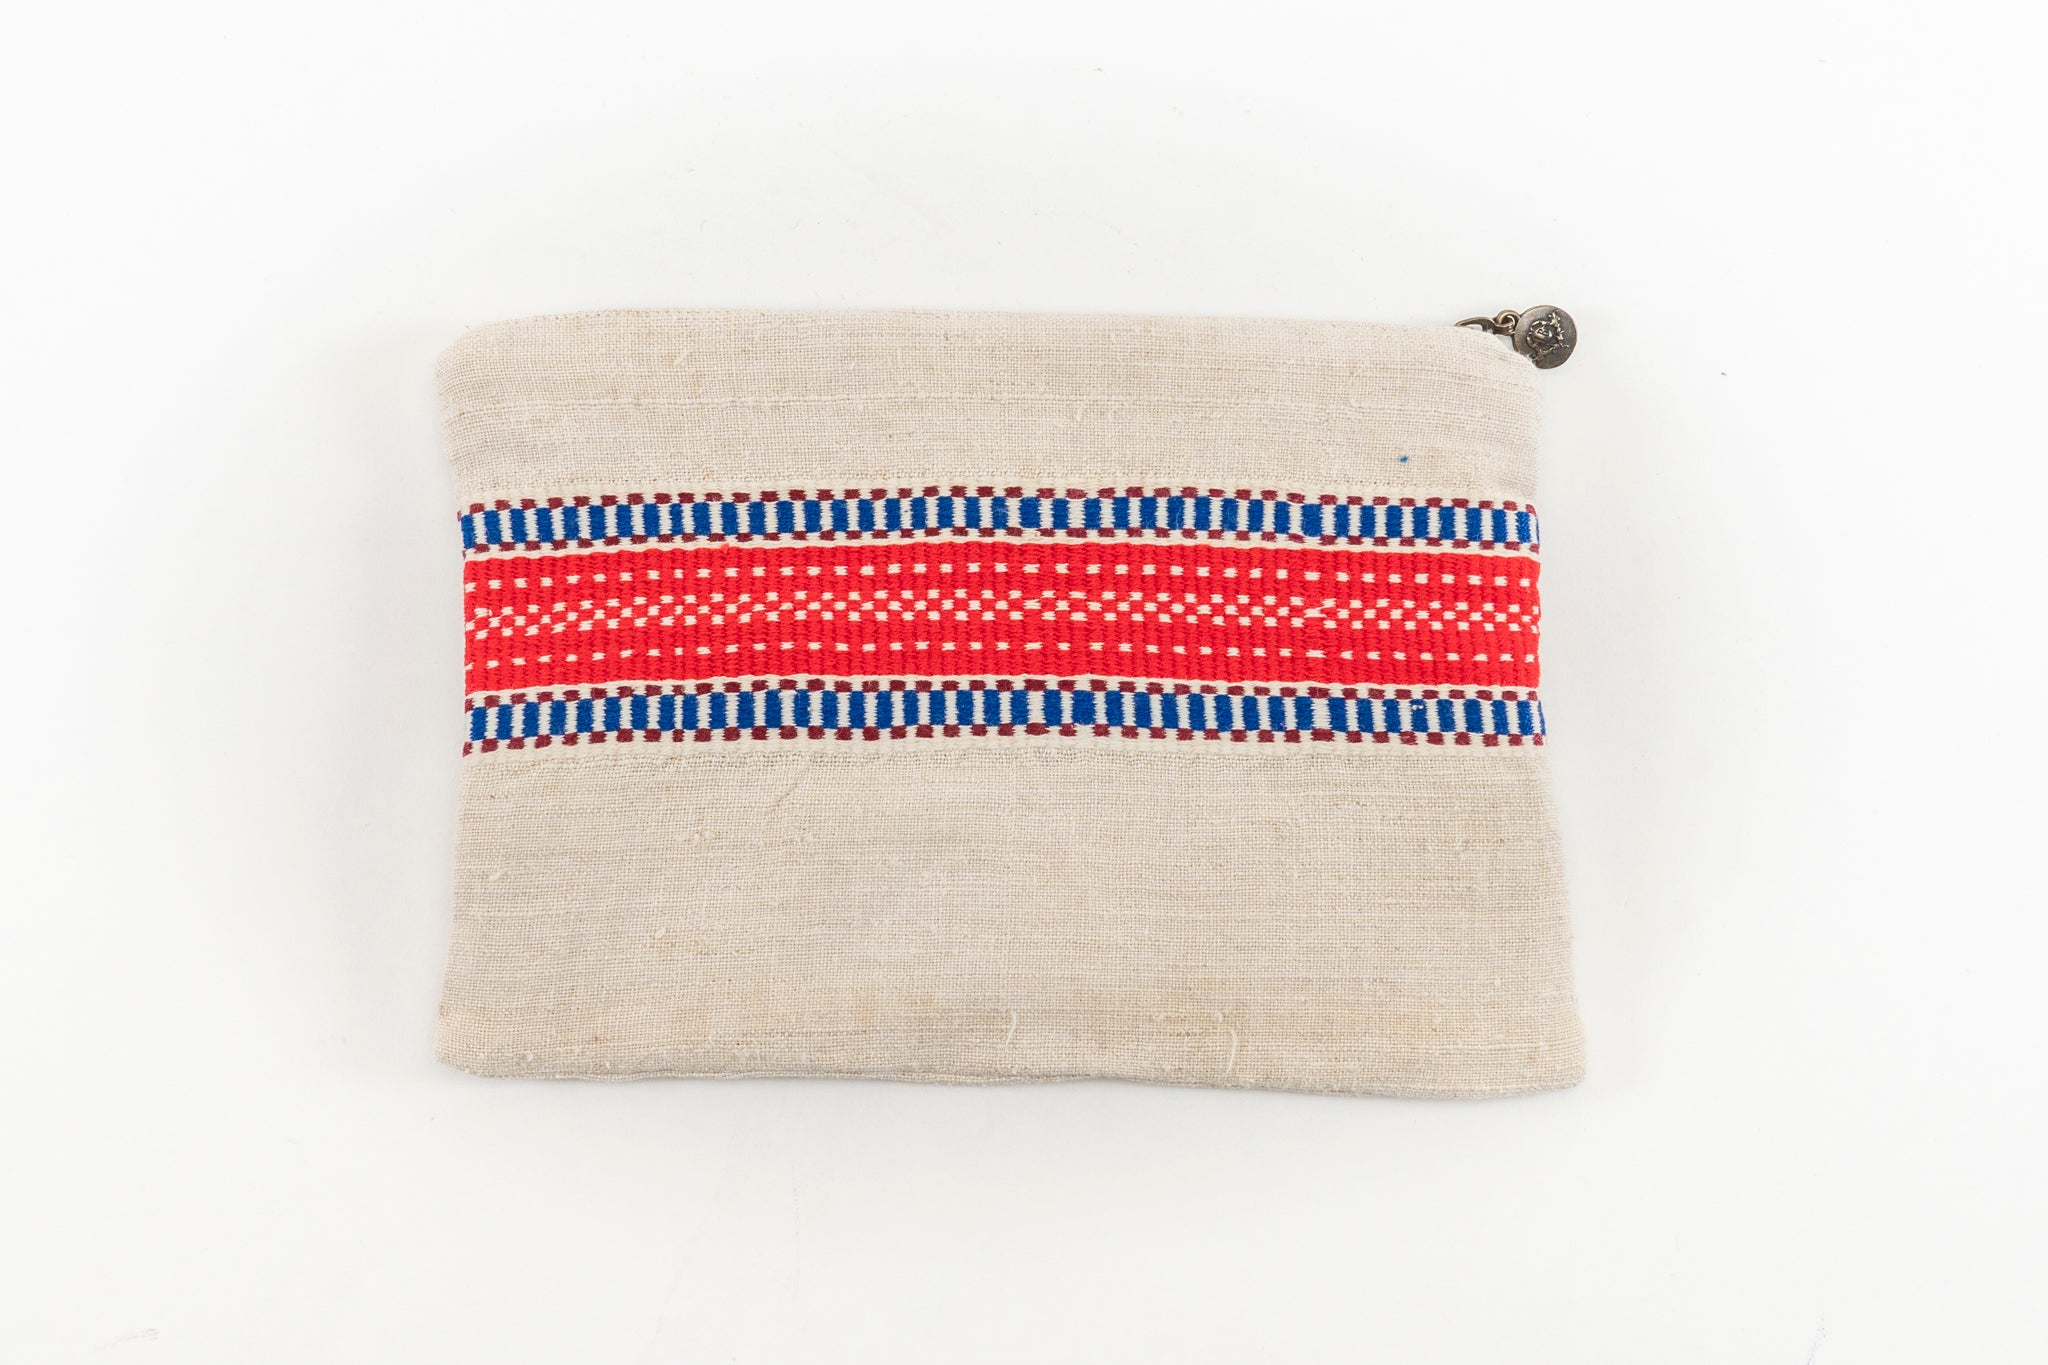 Bag: Handwoven antique and vintage hemp - BG55